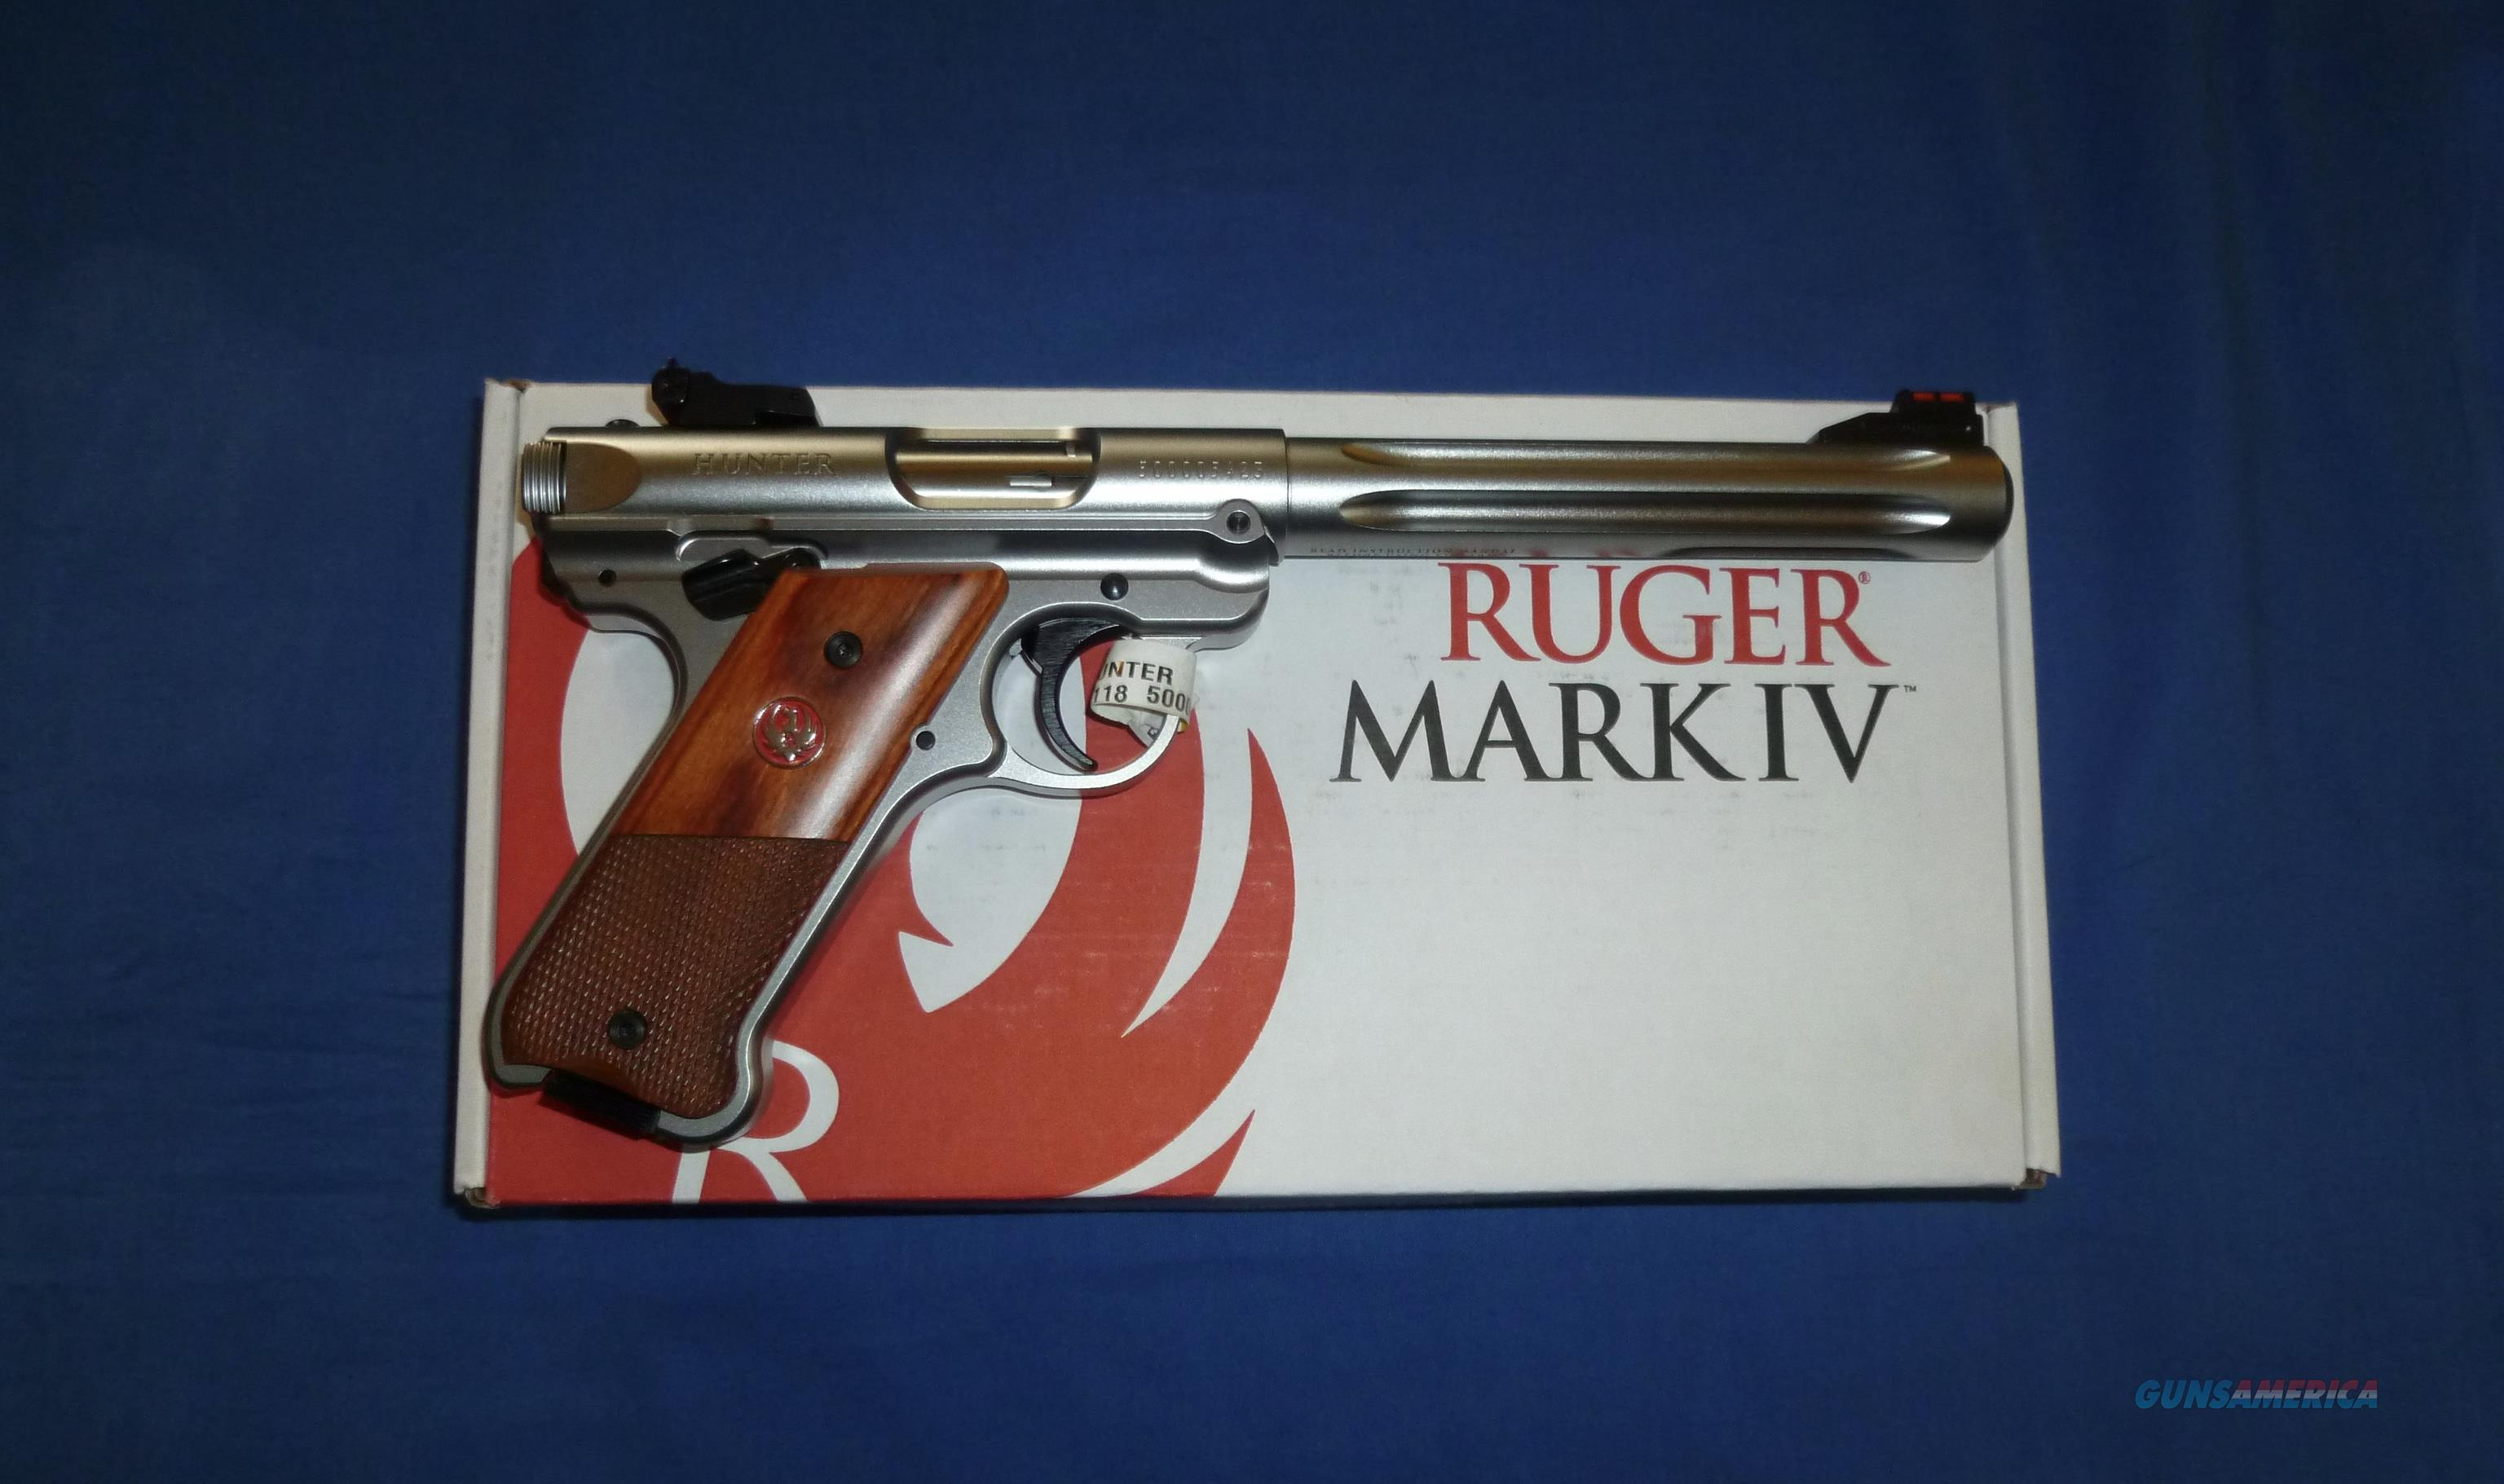 RUGER MARK IV HUNTER 22 LR PISTOL NEW!  Guns > Pistols > Ruger Semi-Auto Pistols > Mark I/II/III/IV Family